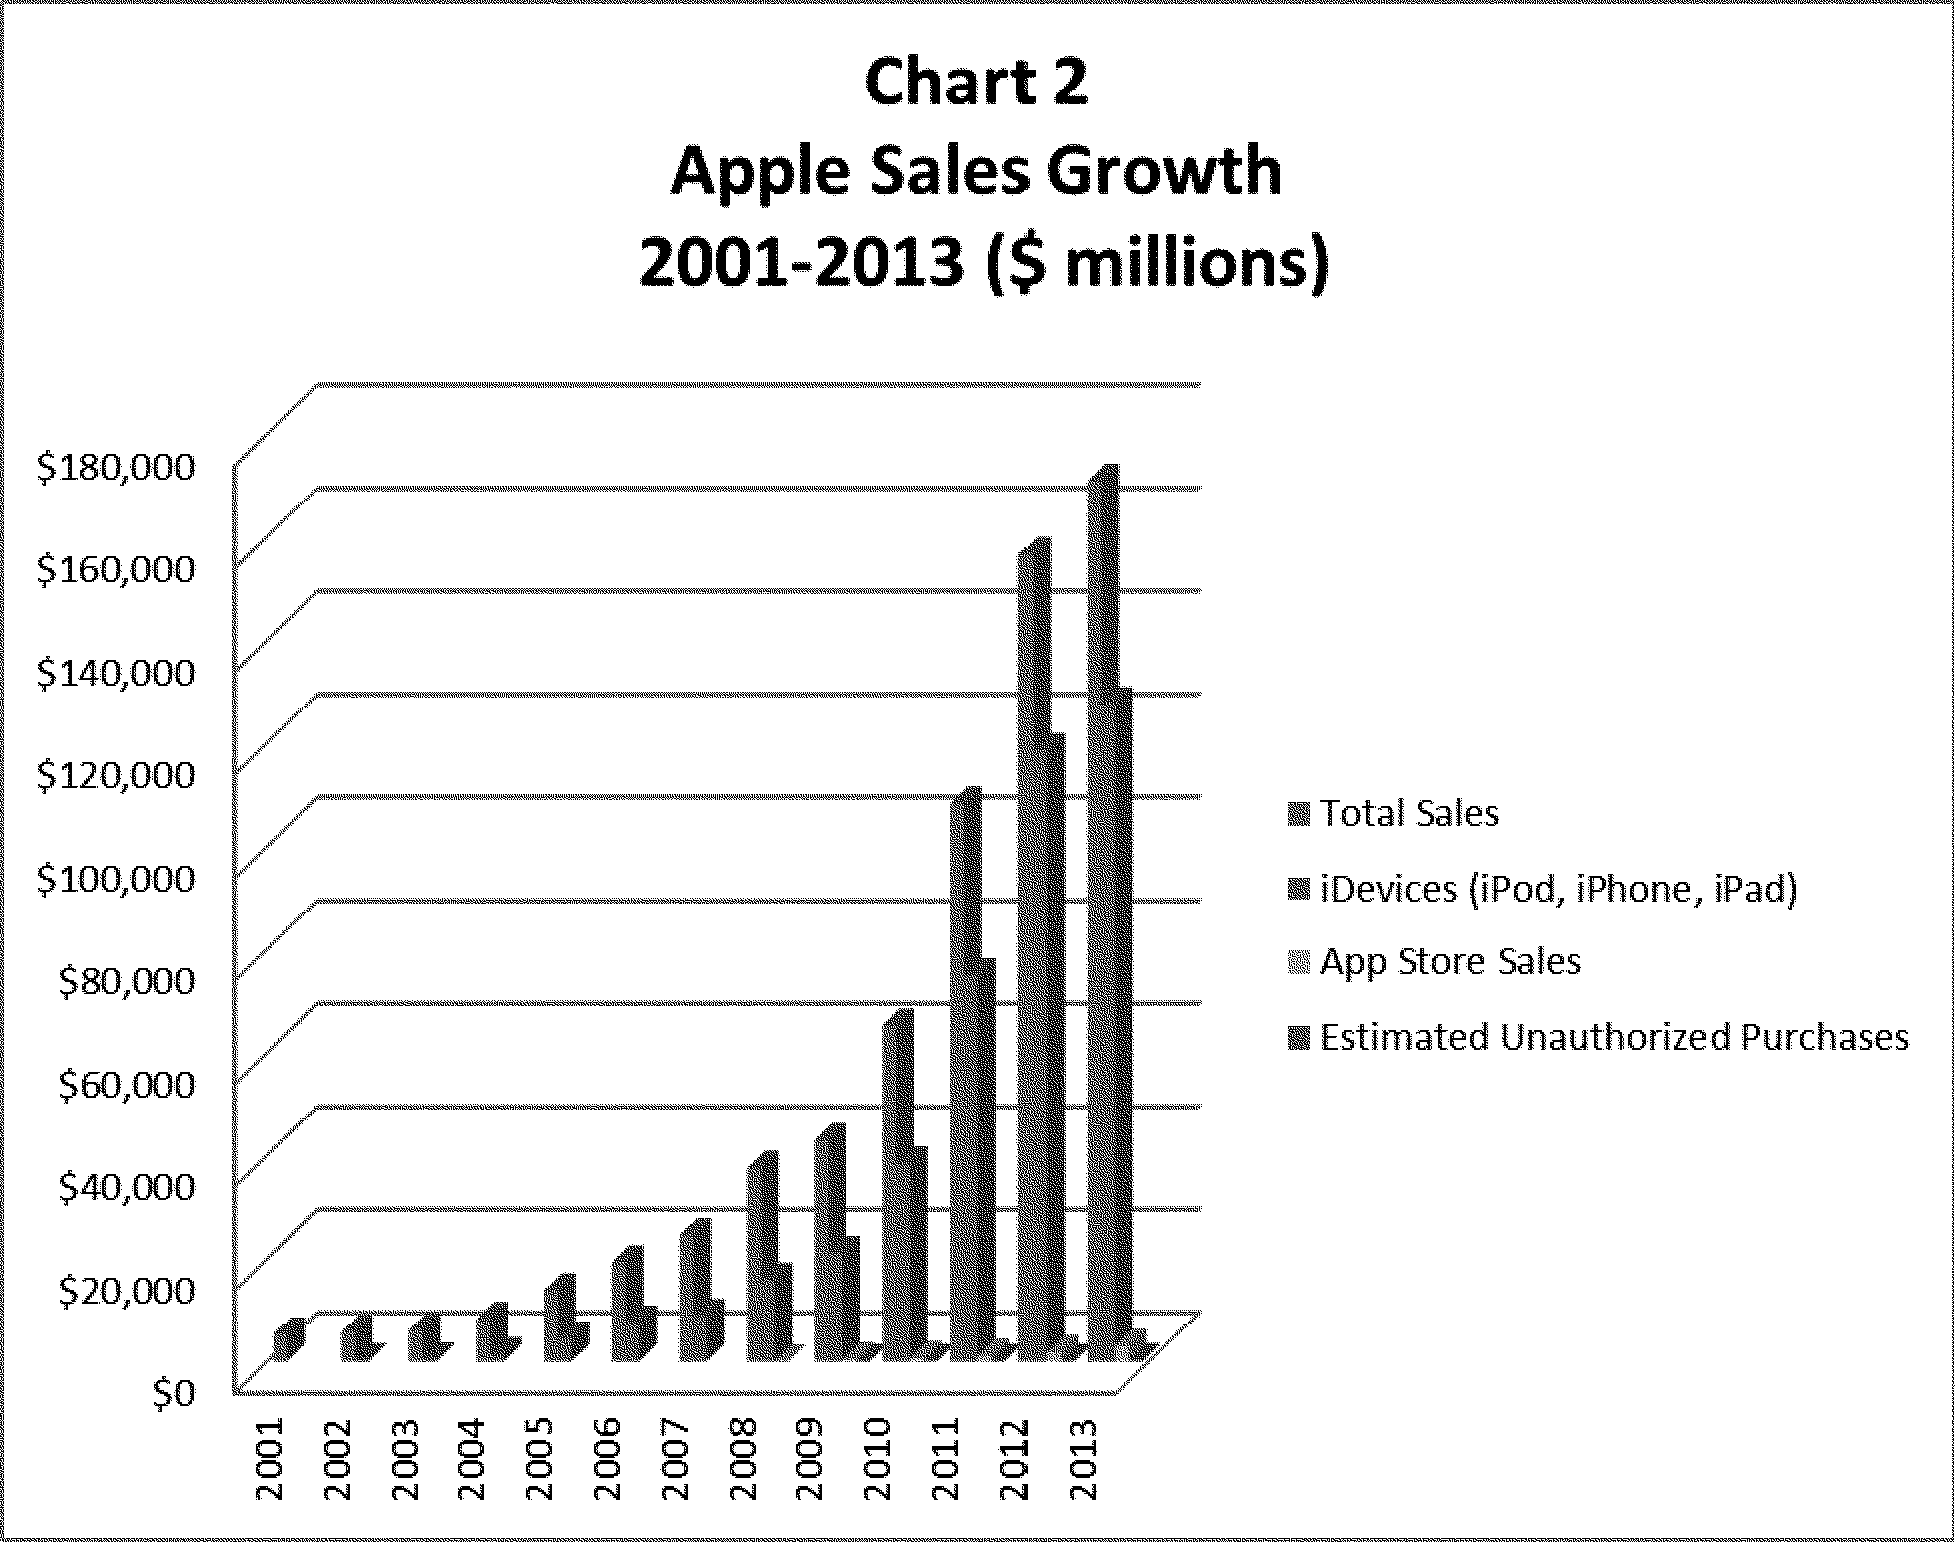 economic analysis of apple inc Apple drives economic growth one of the most fascinating things from an economic point of view happened during this most recent recession: apple posted quarter-after-quarter growth and record-setting revenue numbers.